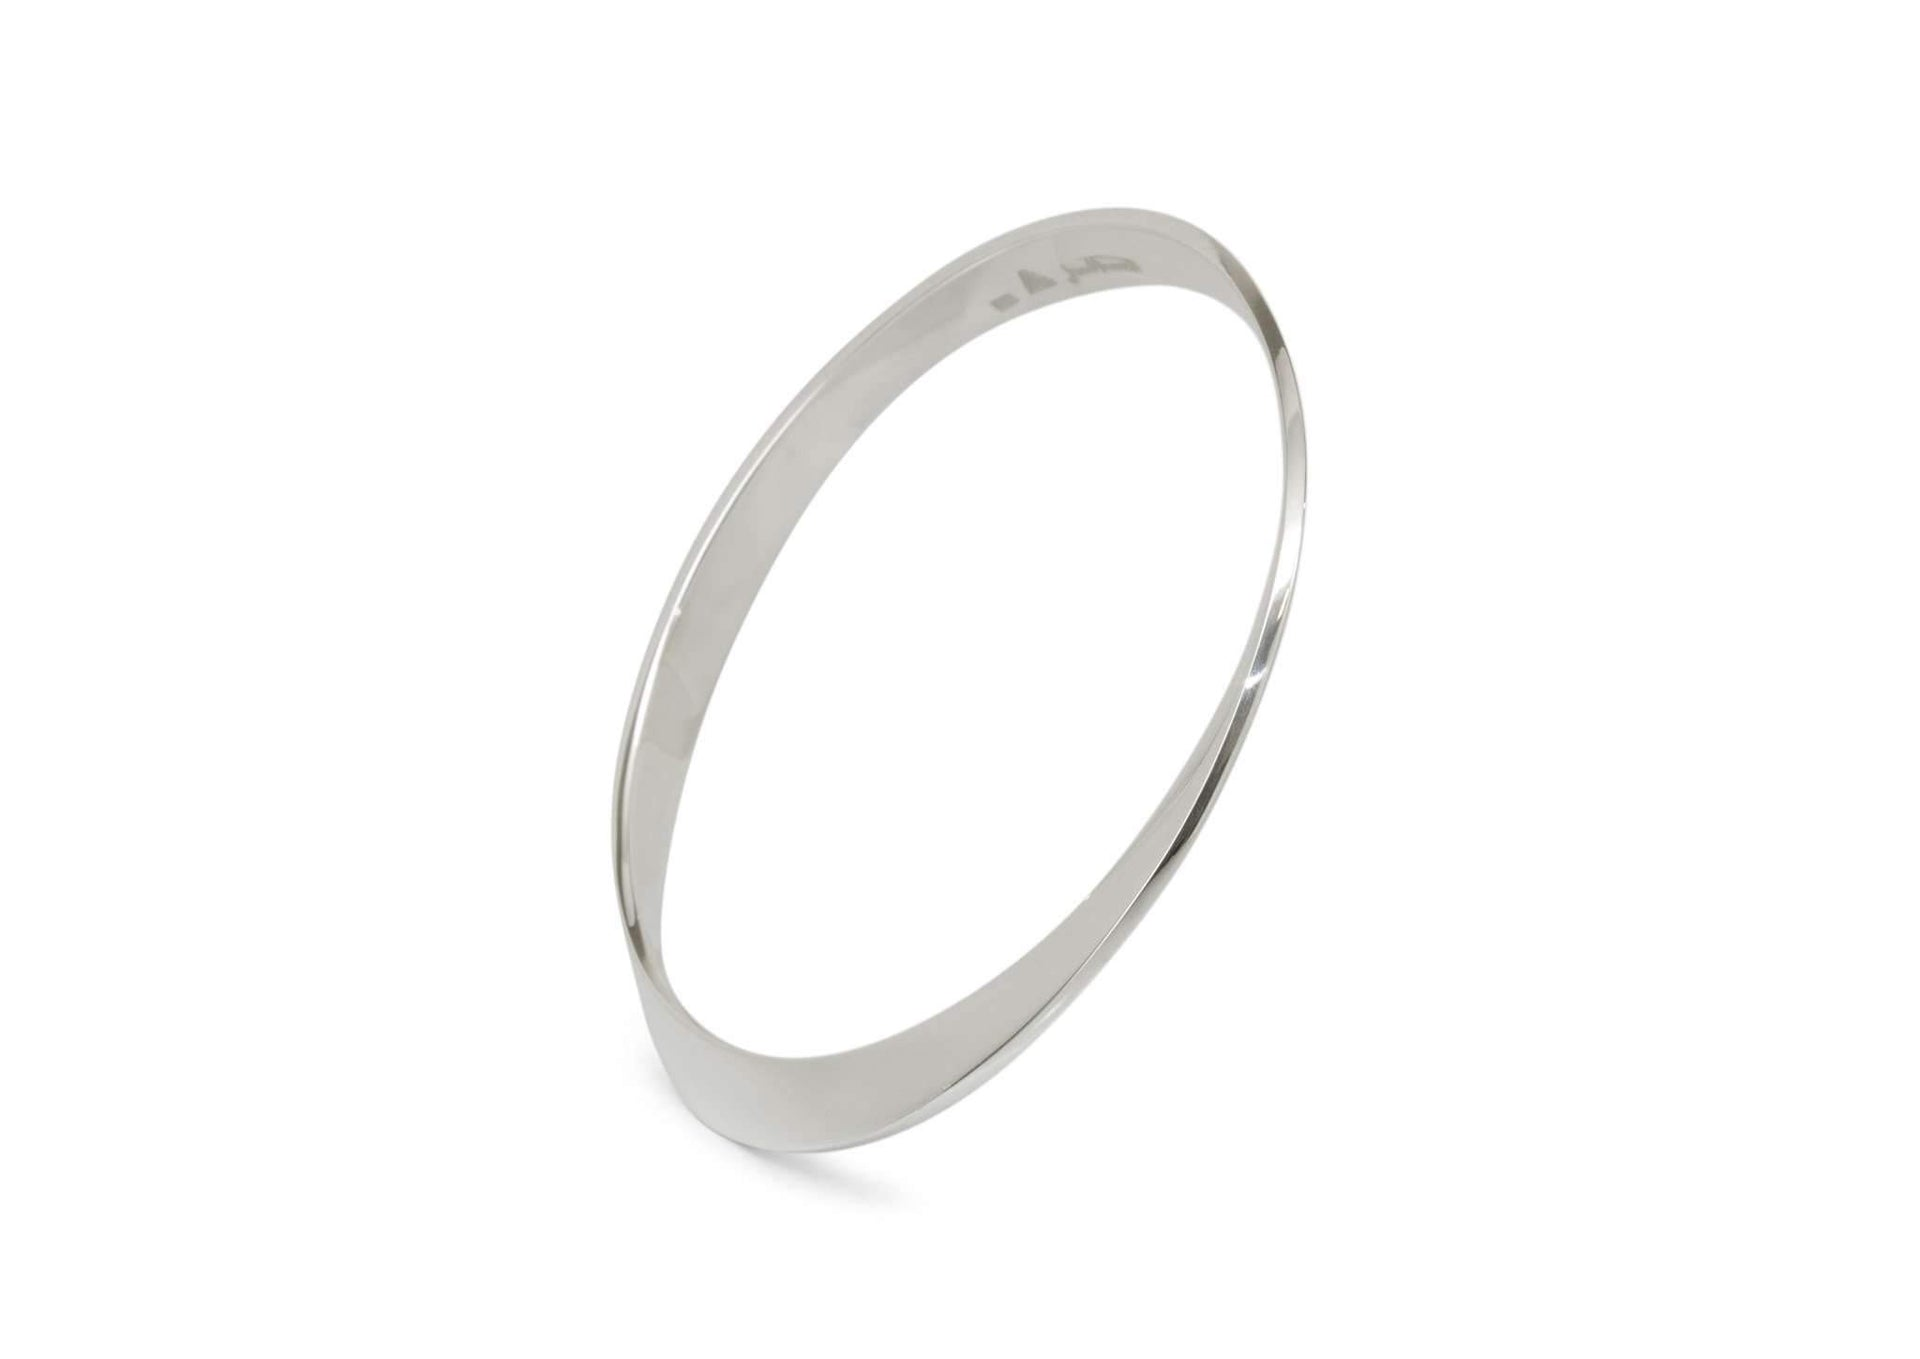 Möbius Twist Bangle, Sterling Silver